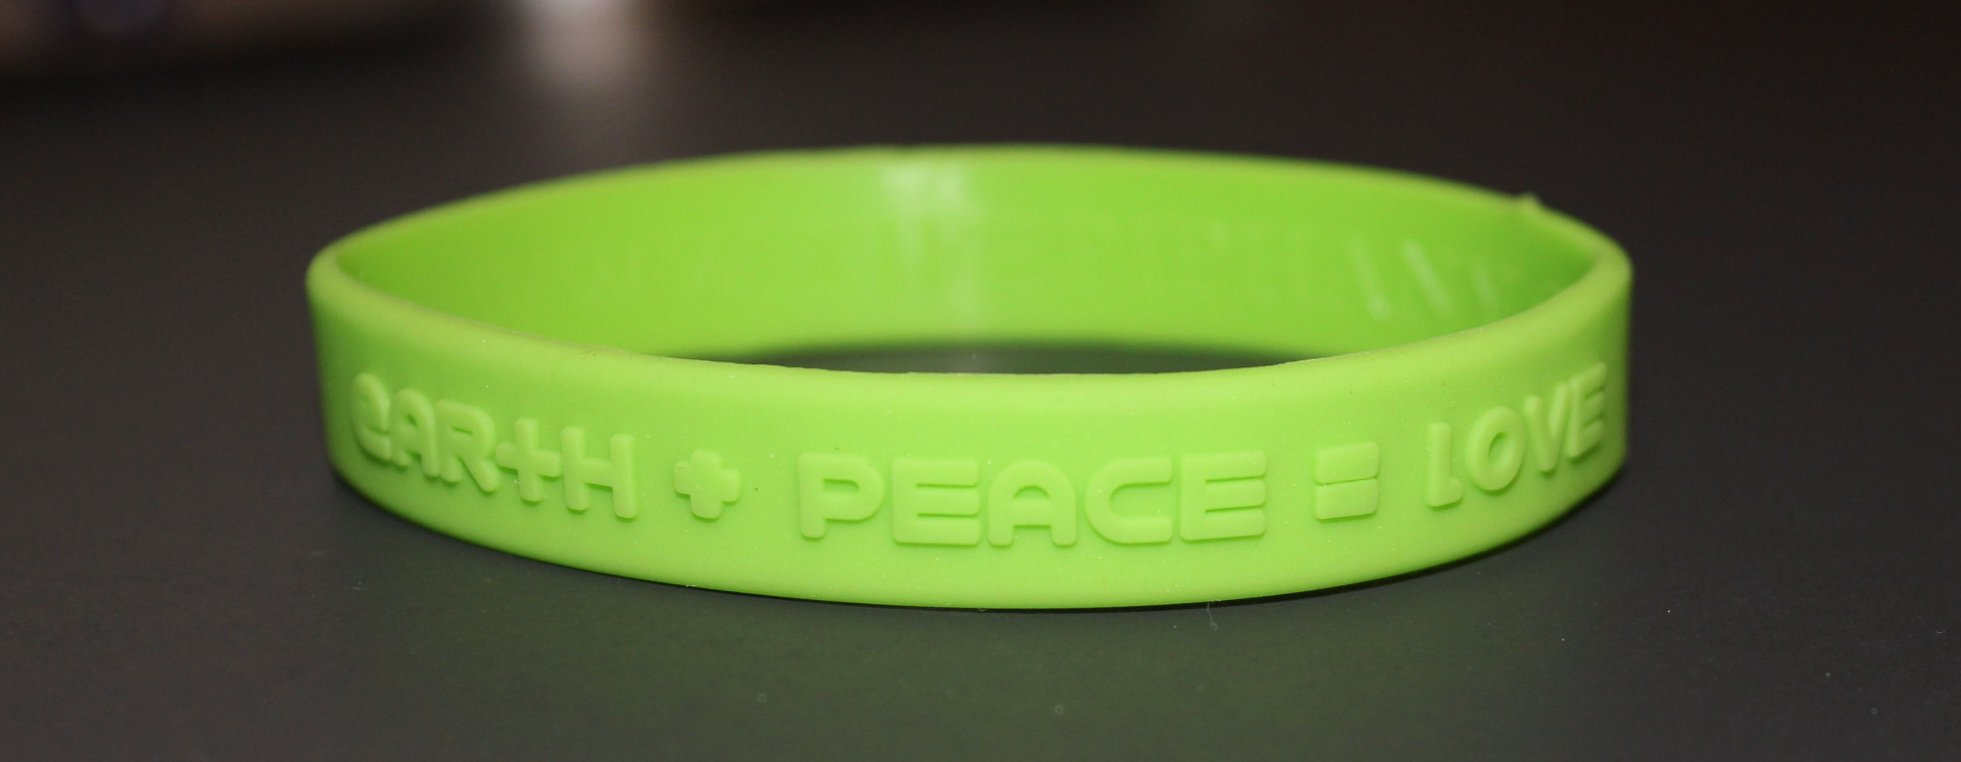 1 ''Green'' Silicon Wristband ''earth+peace=love'' for kids, teens, unisex by tifepiphany (Image #1)